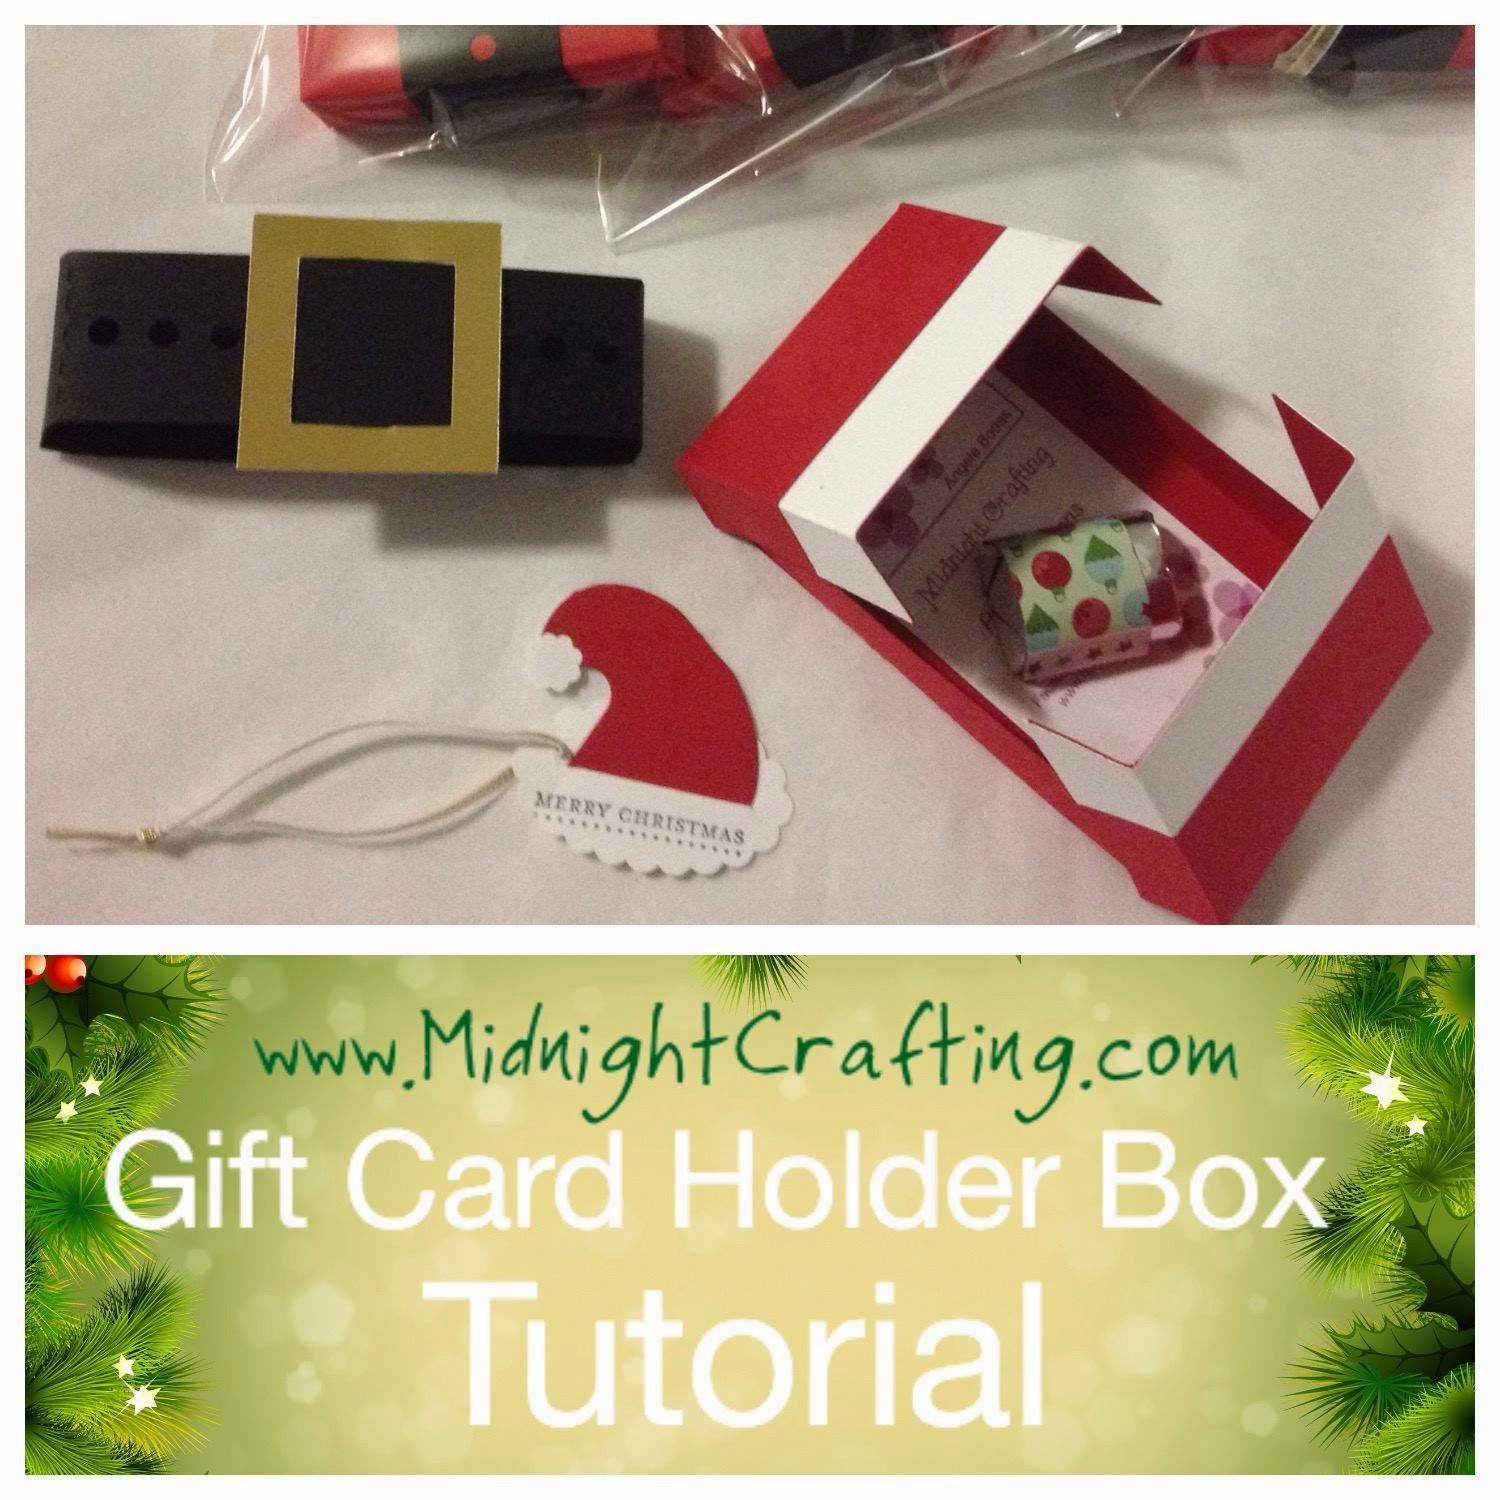 MidnightCrafting Gift Box Christmas